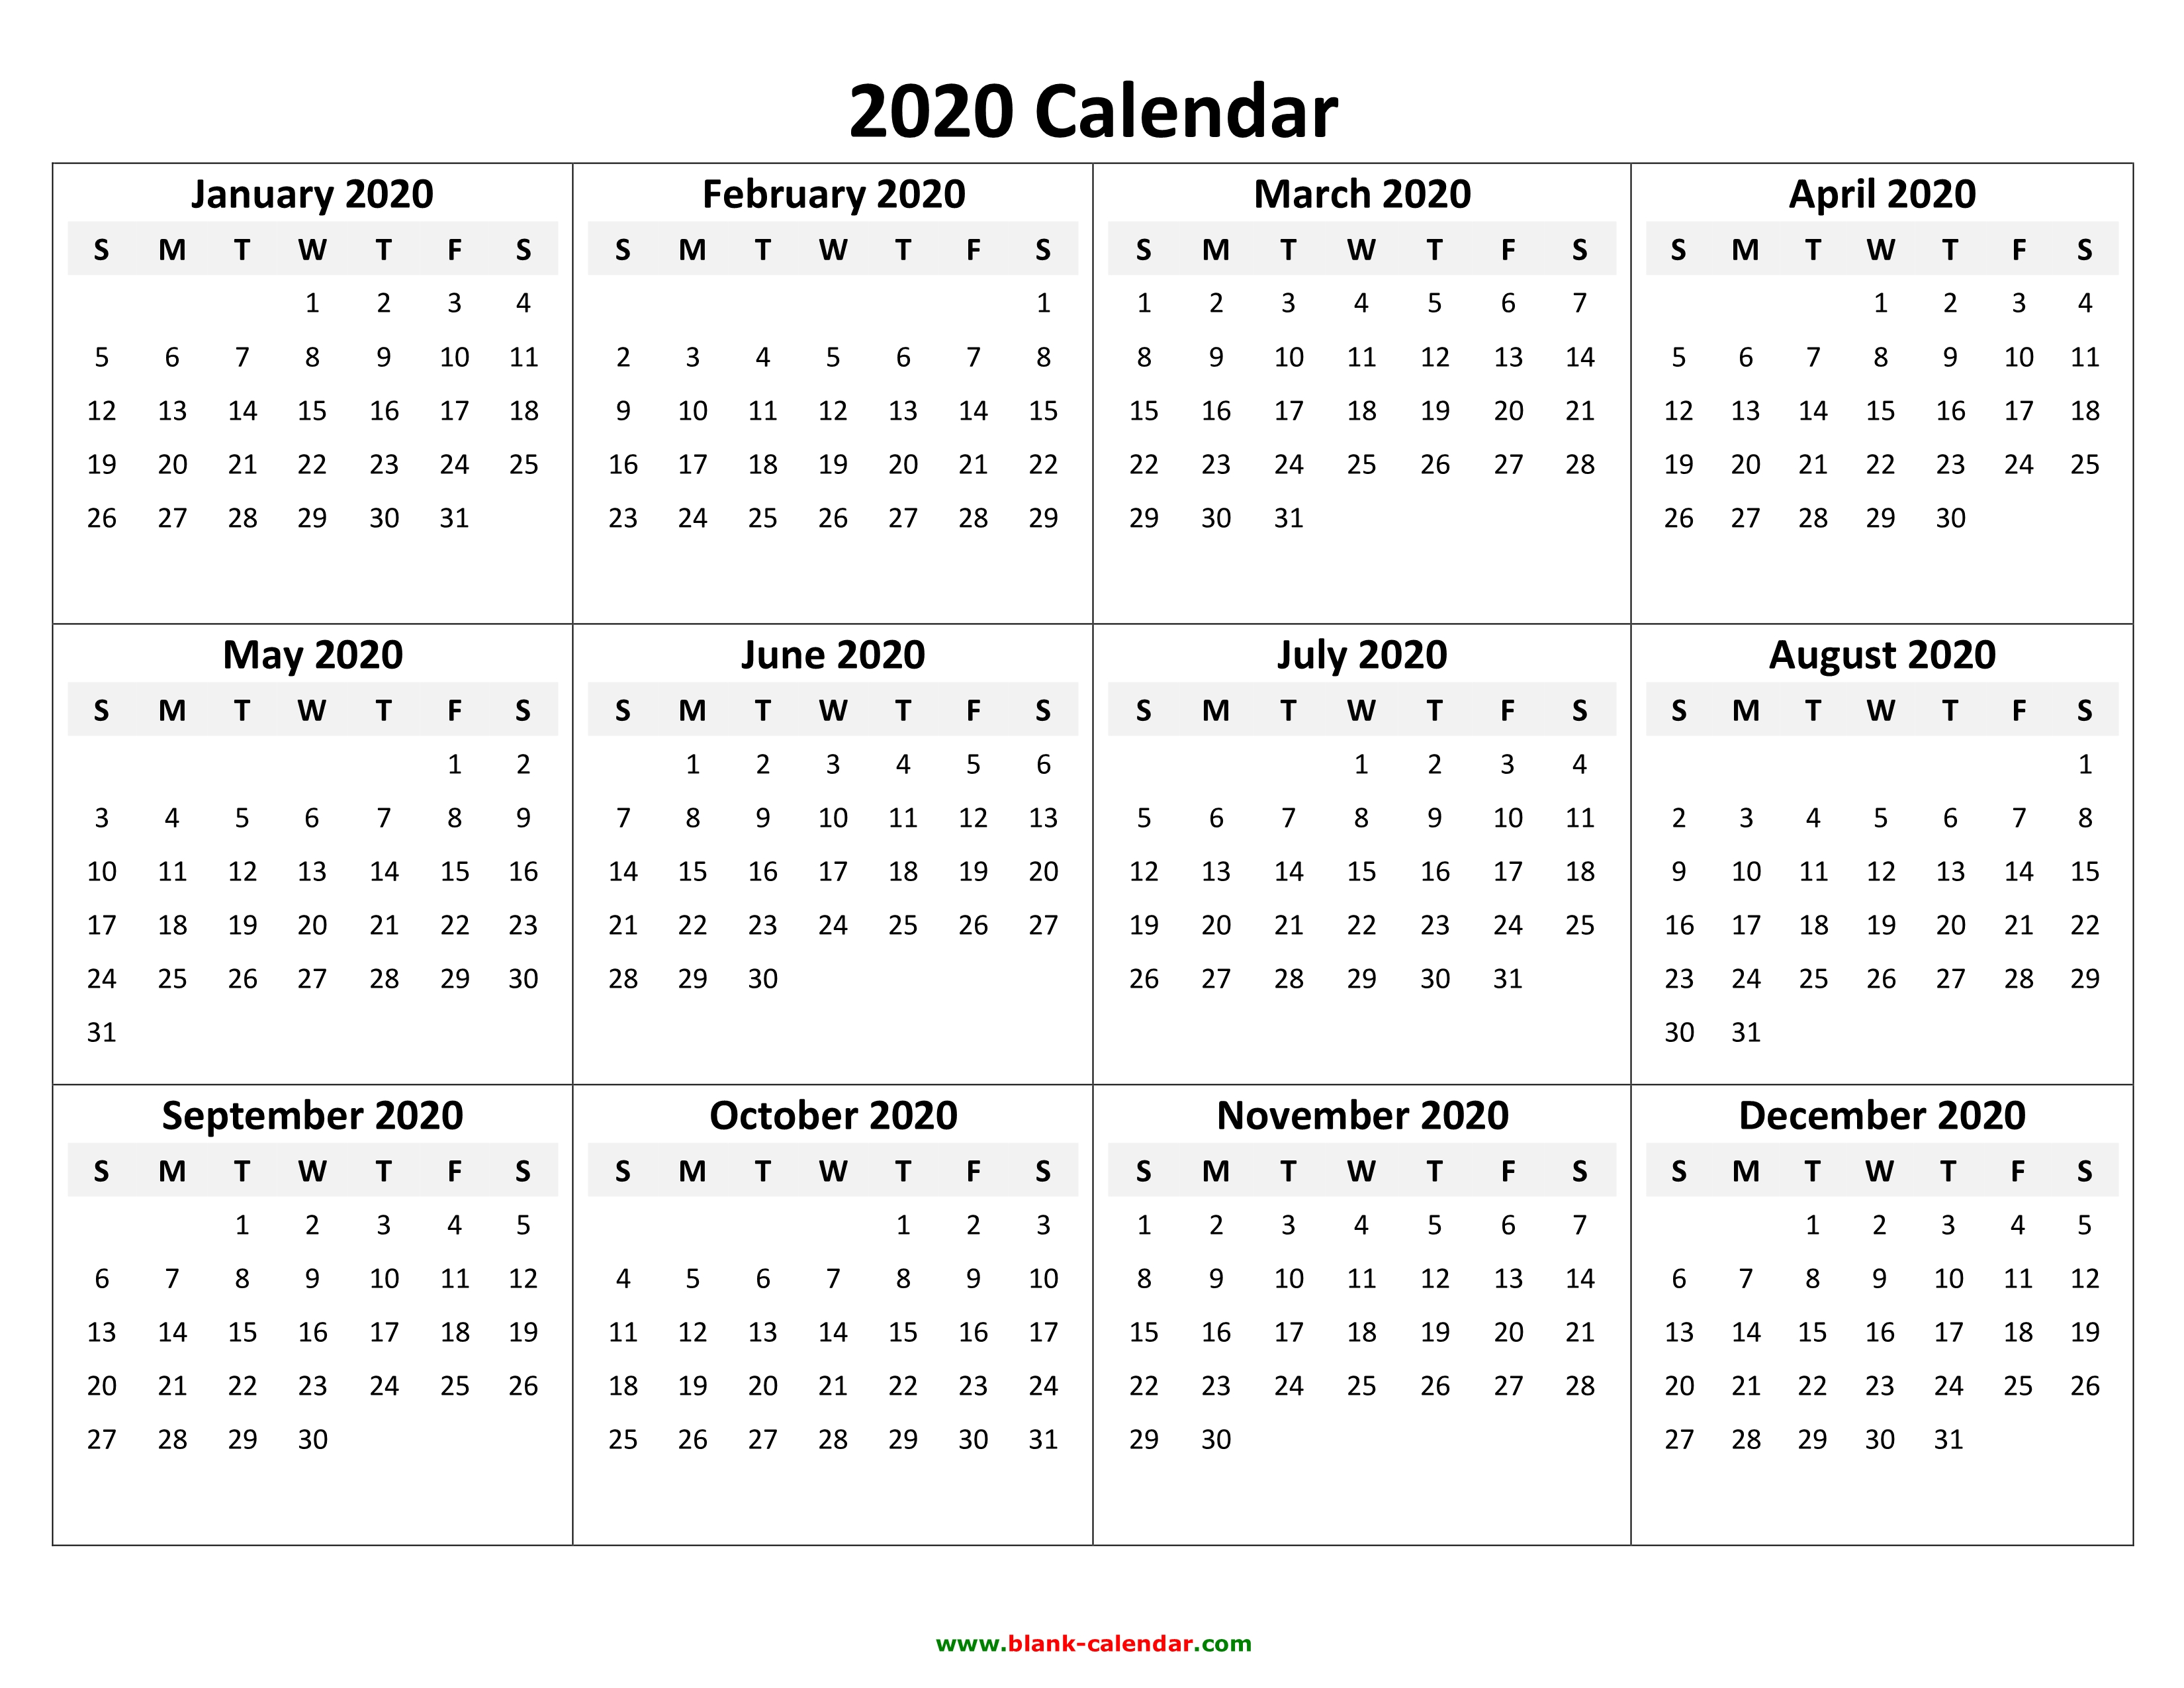 Yearly Calendar 2020 | Free Download And Print with Blank 2020 Calendars To Edit